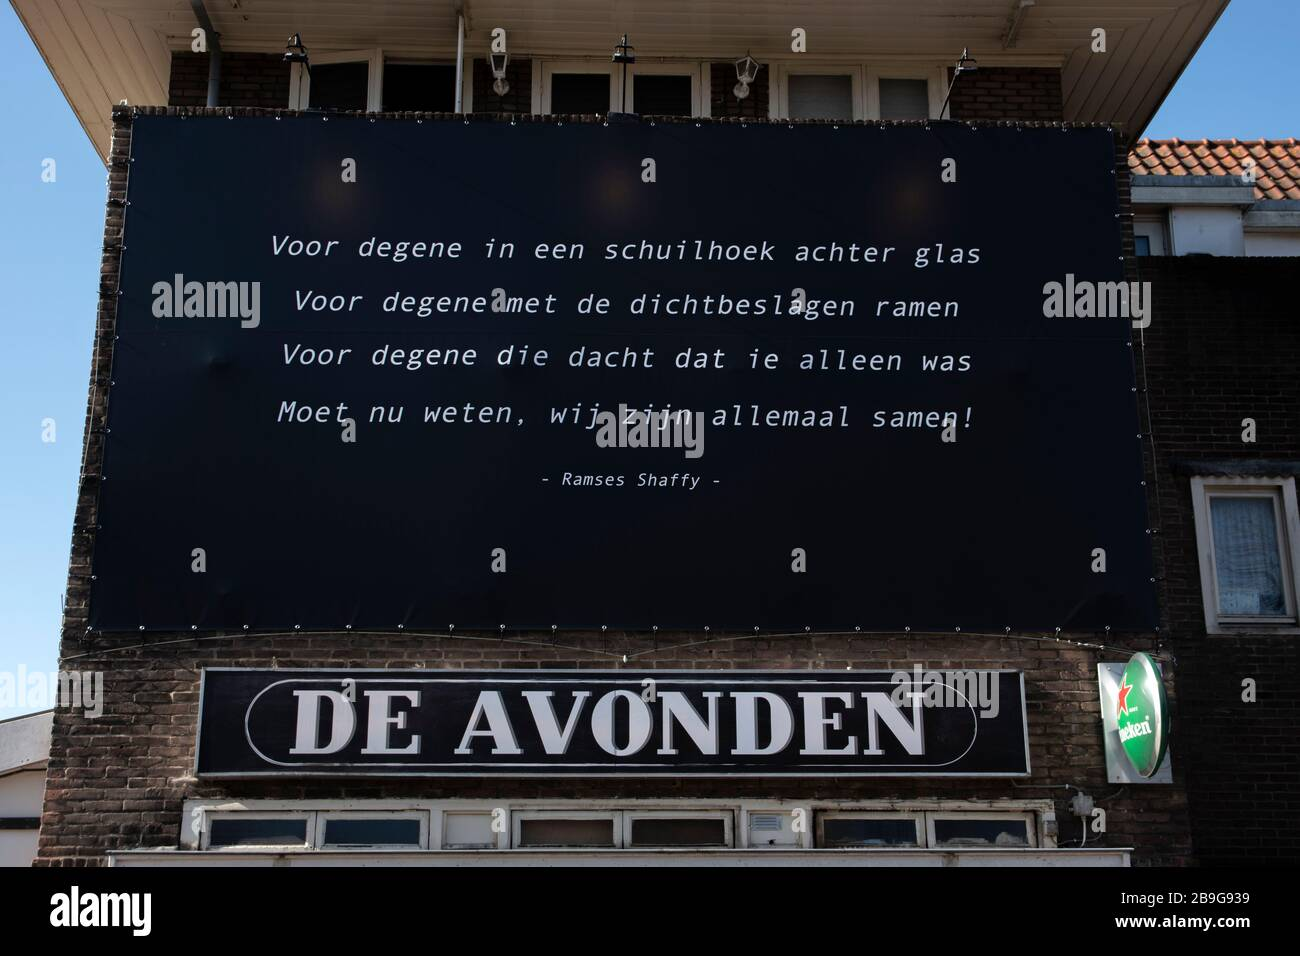 Billboard Cafe De Avonden With Text From Ramses Shaffy At Amsterdam The Netherlands 2020 Stock Photo